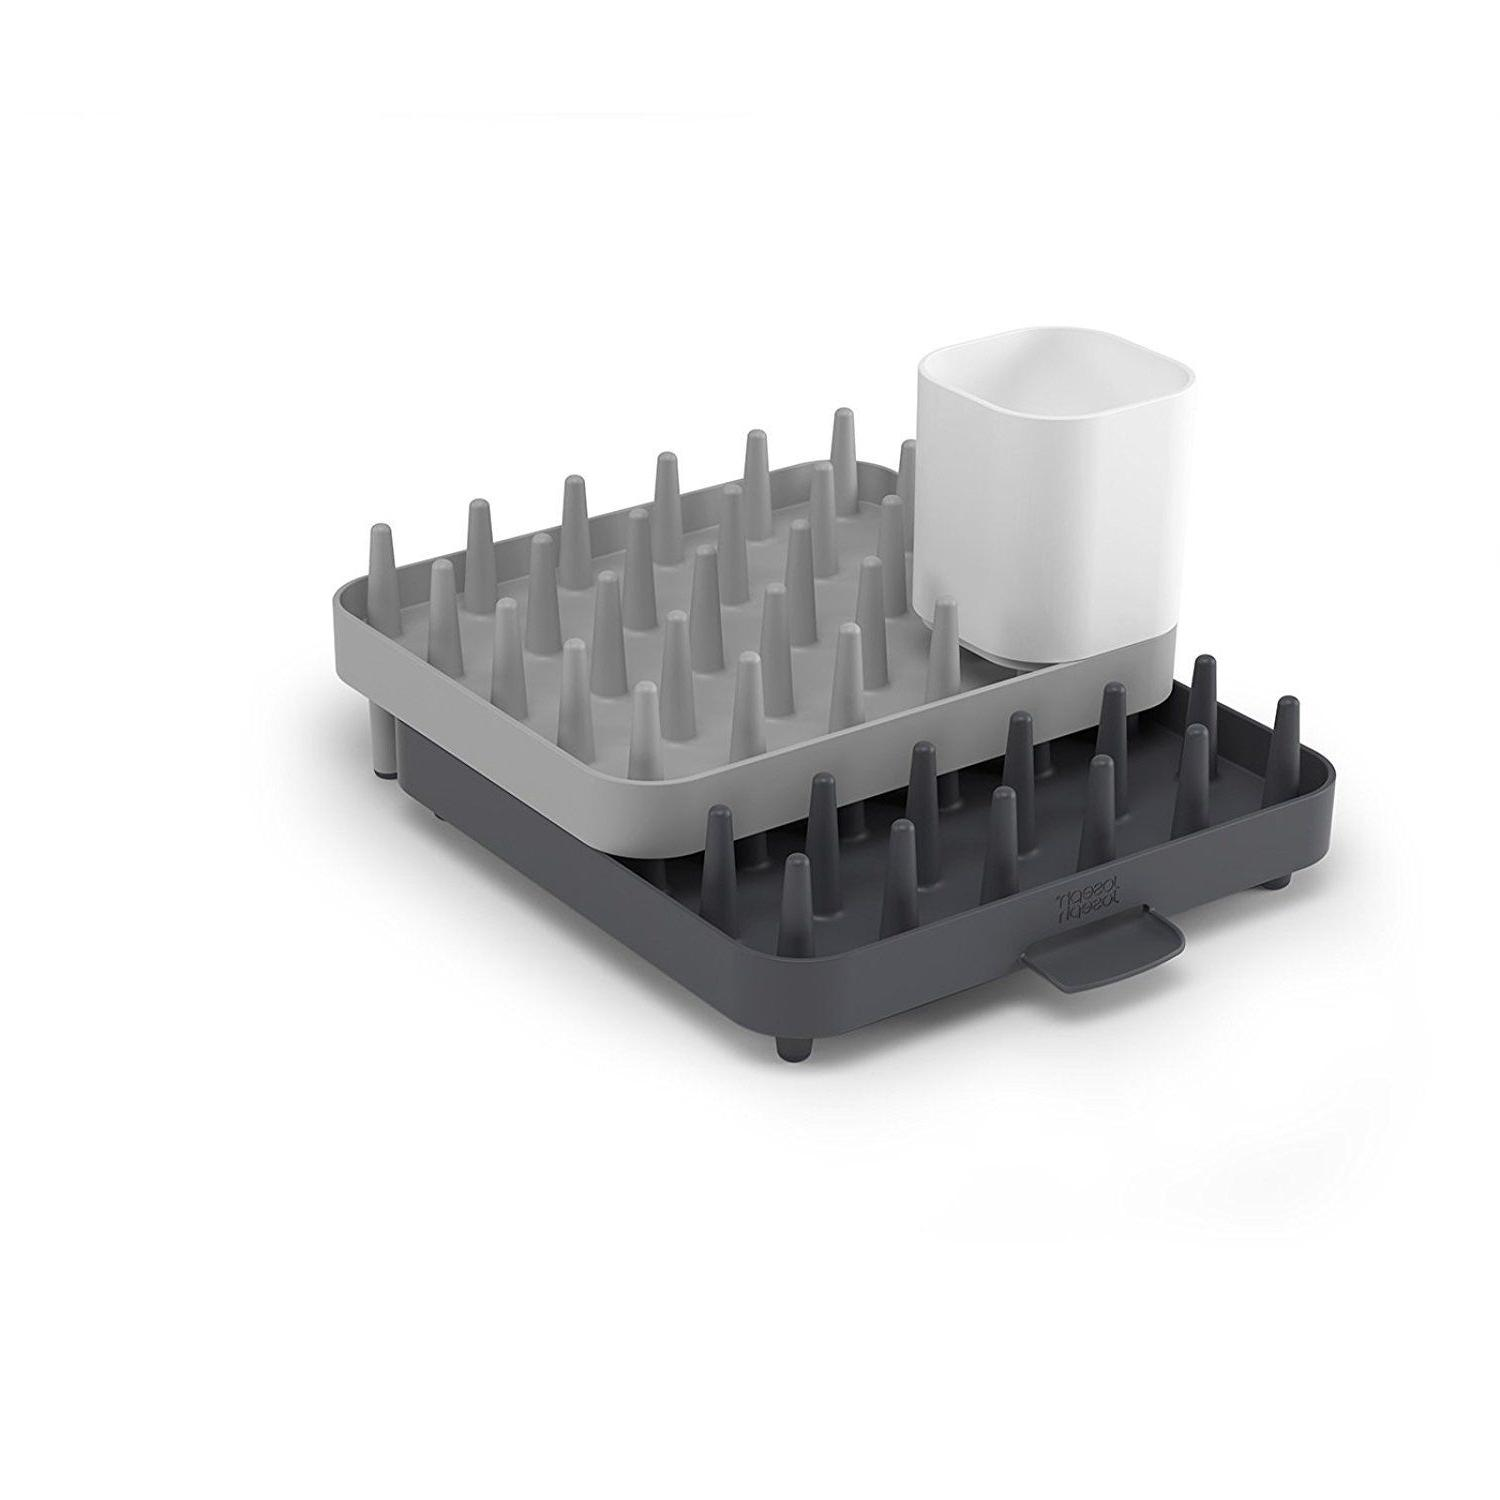 Joseph Adjustable Dish Rack Drainboard